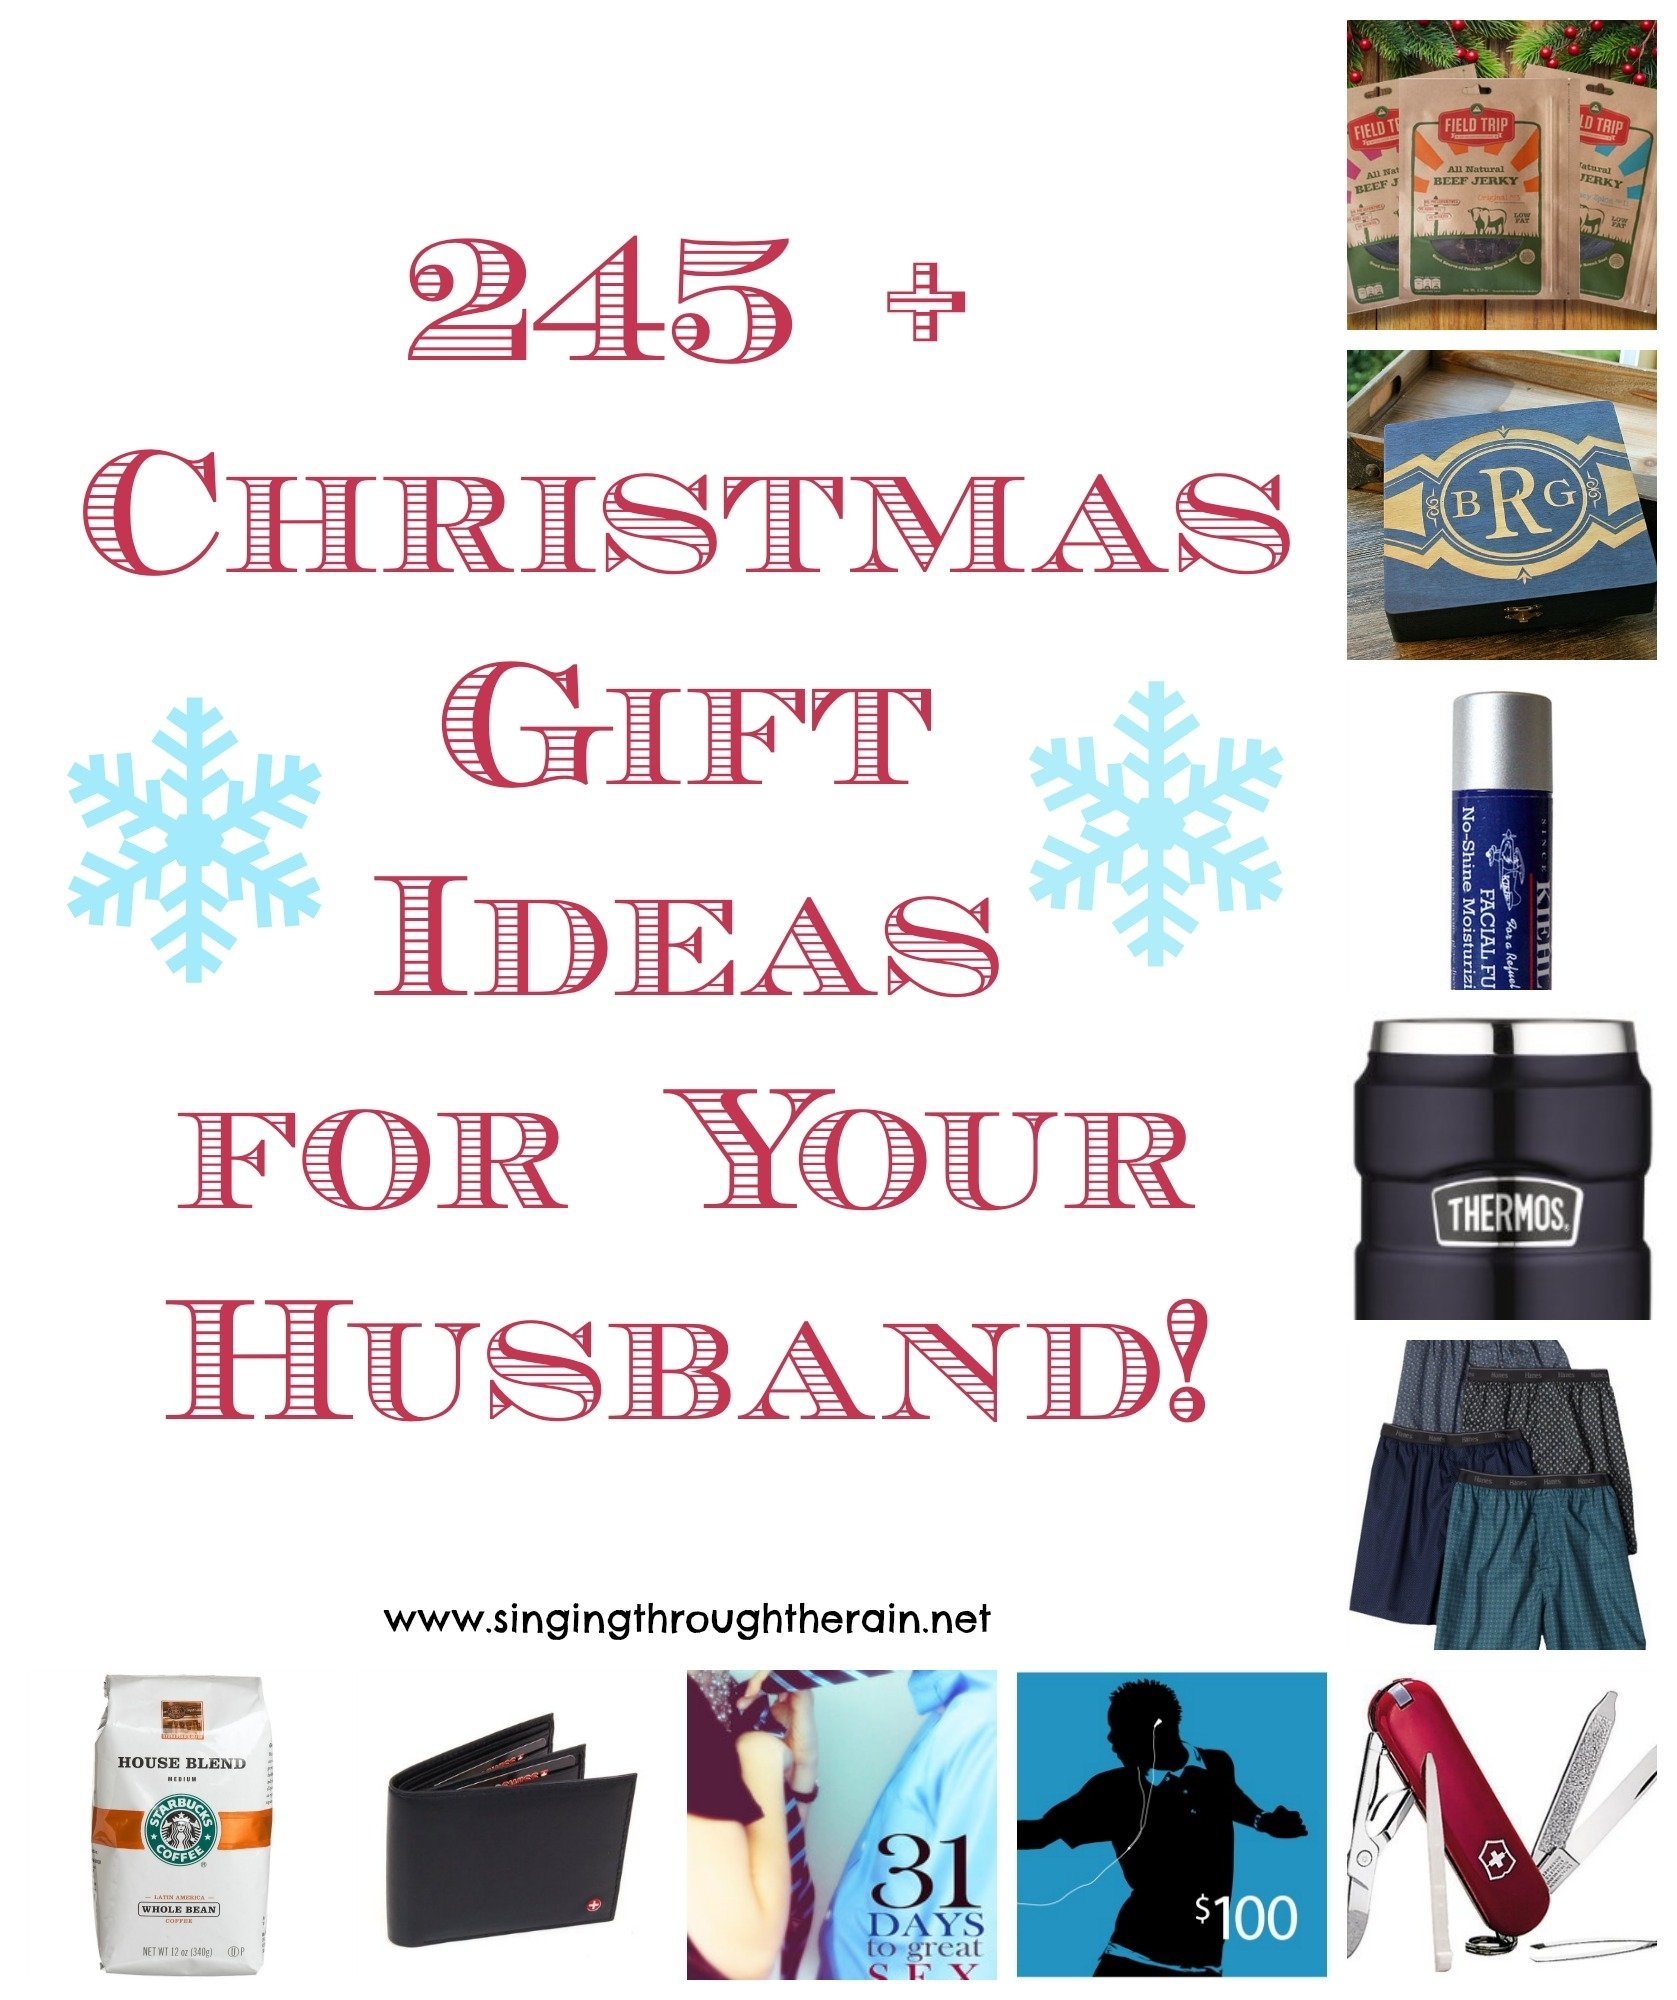 10 Lovable Best Gift Ideas For Men 2013 245 christmas gift ideas for your husband singing through the rain 5 2020